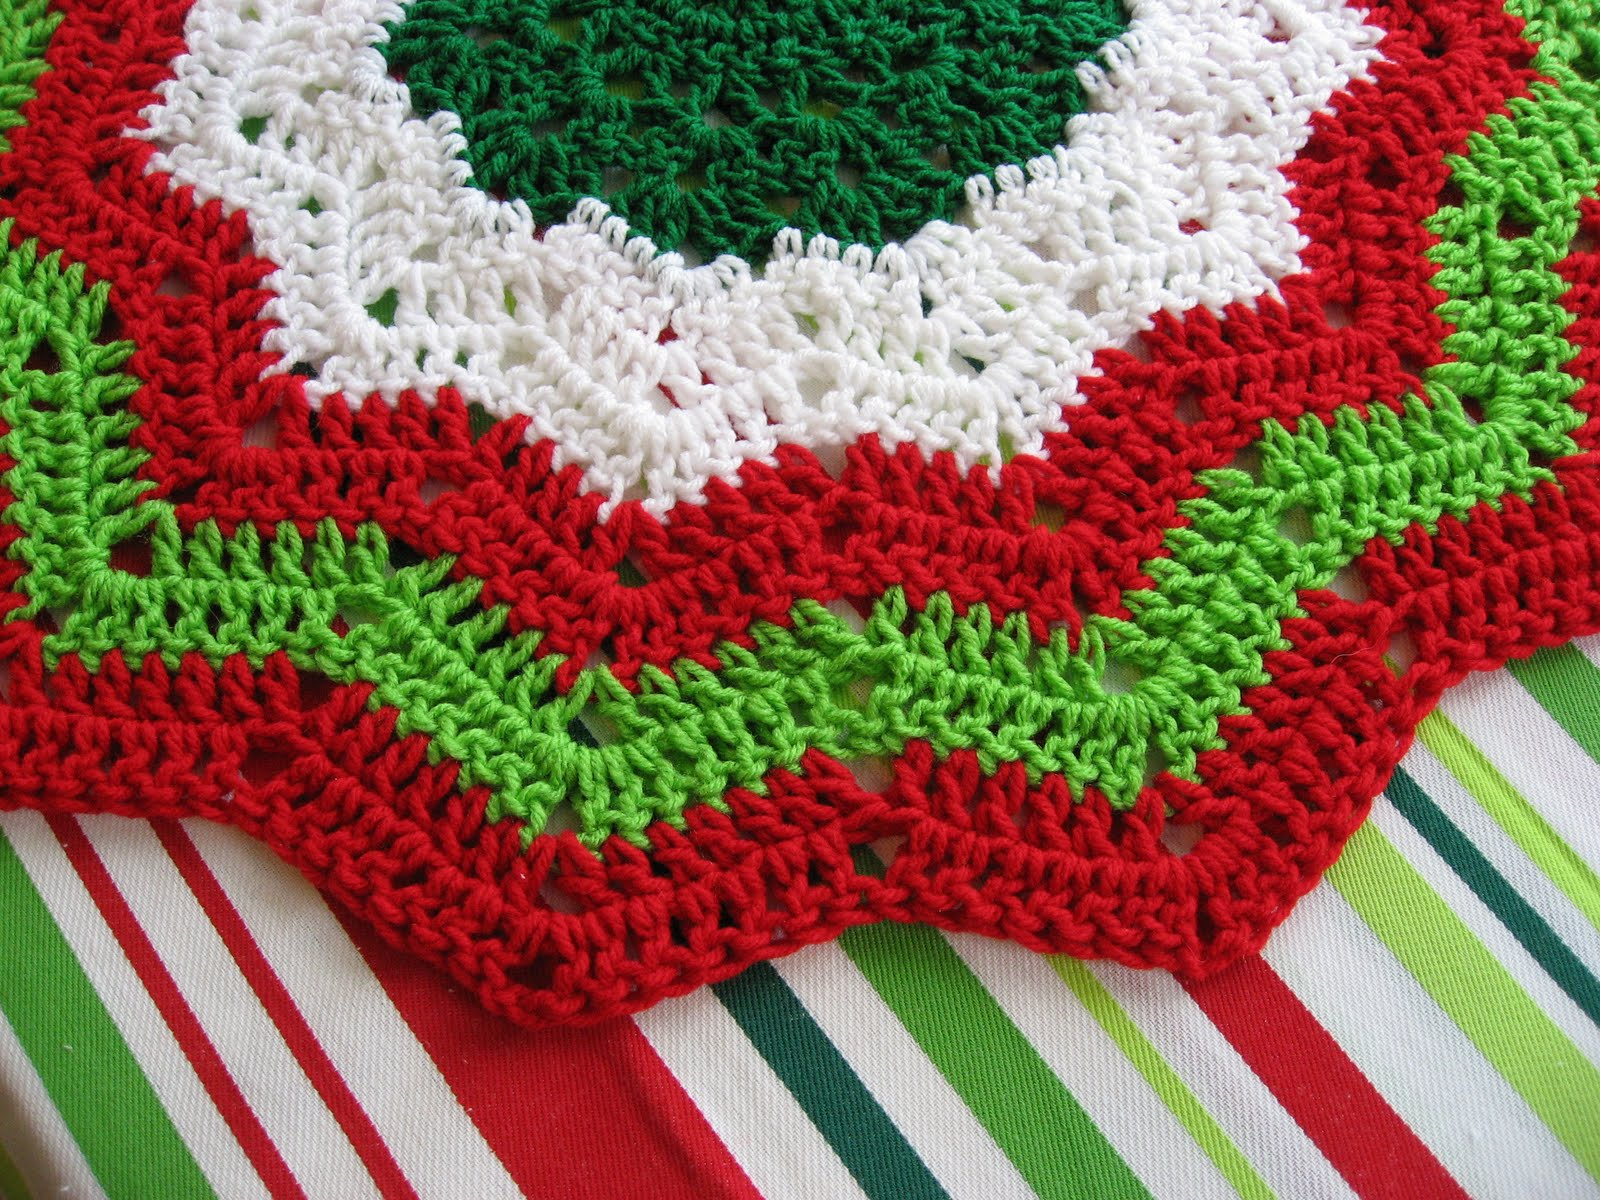 Crochet Xmas Tree Skirt : CROCHETED CHRISTMAS TREE SKIRT PATTERNS - Crochet Club